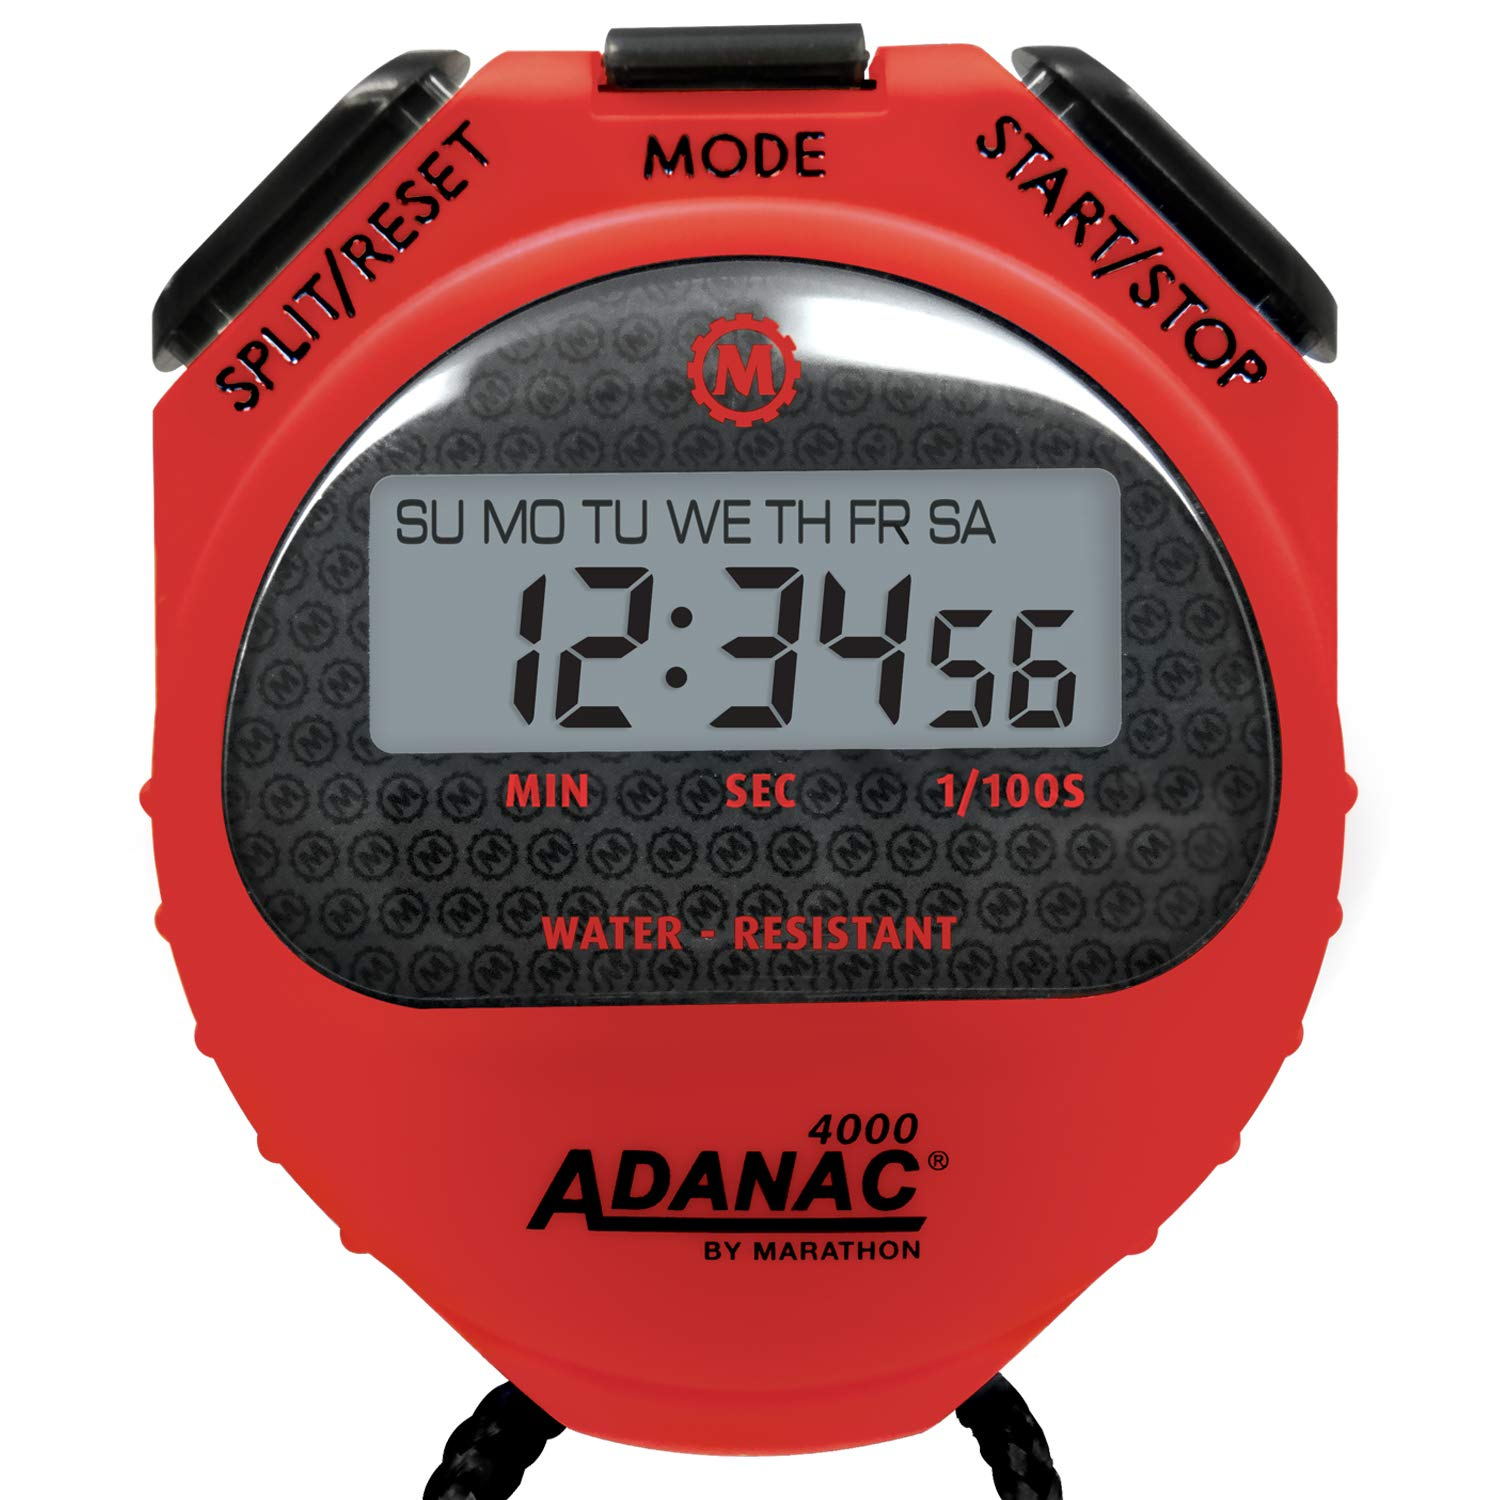 2-Year Warranty Red, 10 Water Resistant MARATHON Adanac 4000 Digital Stopwatch Timer with Extra Large Display and Buttons .